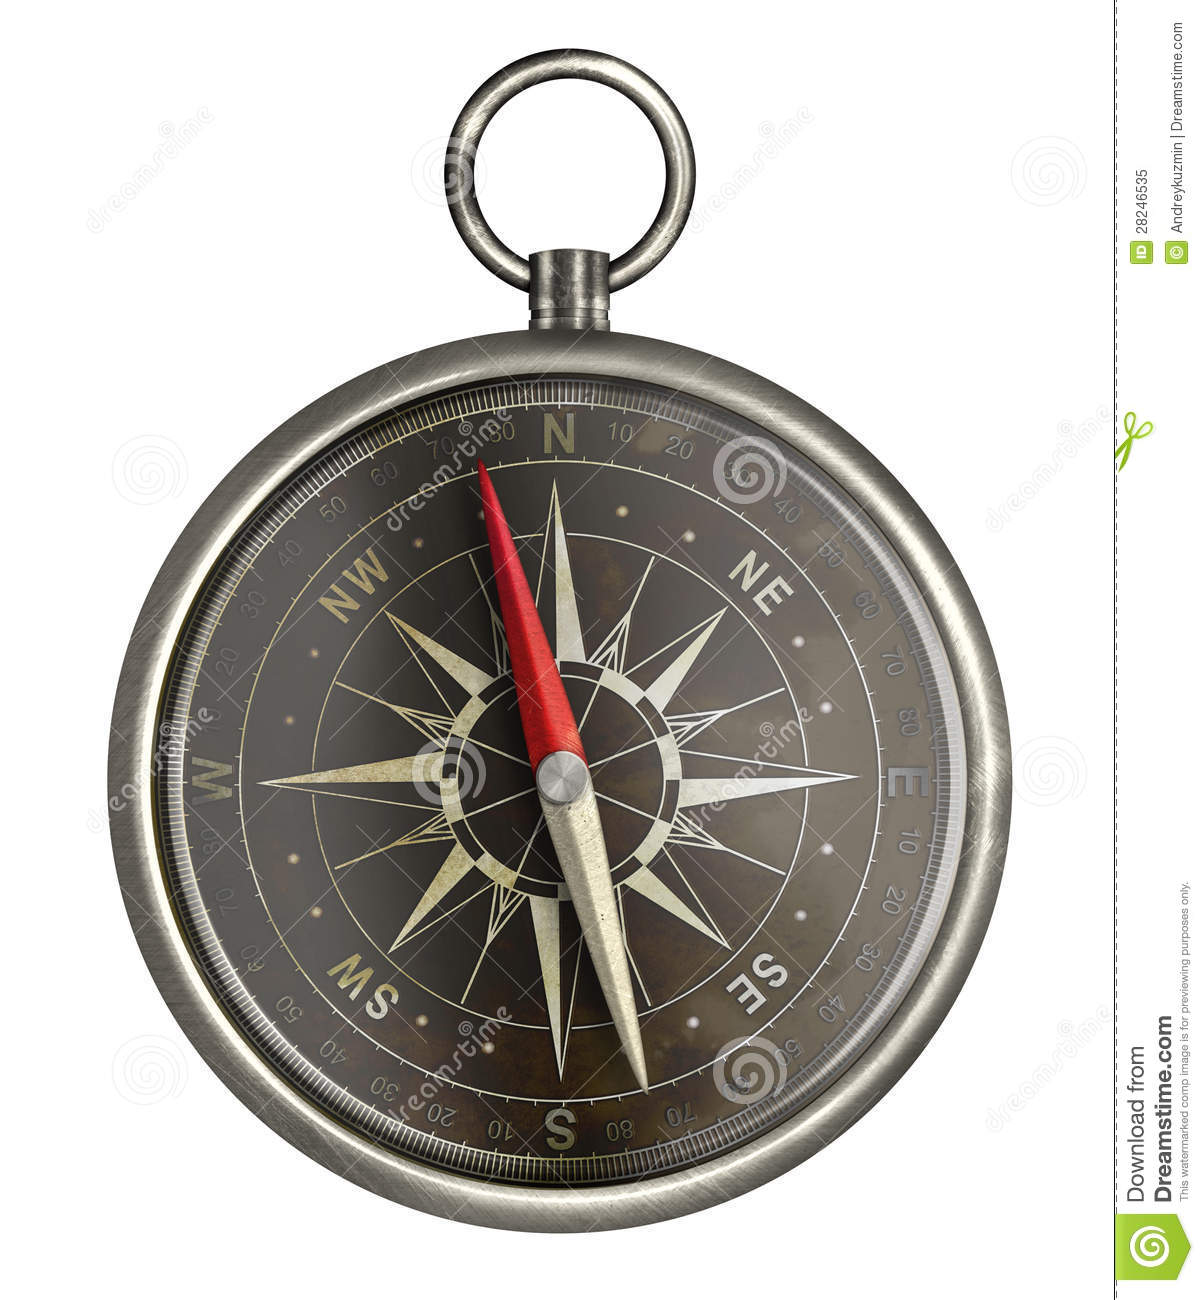 Old Metal Compass With Black Scale Isolated Stock ...